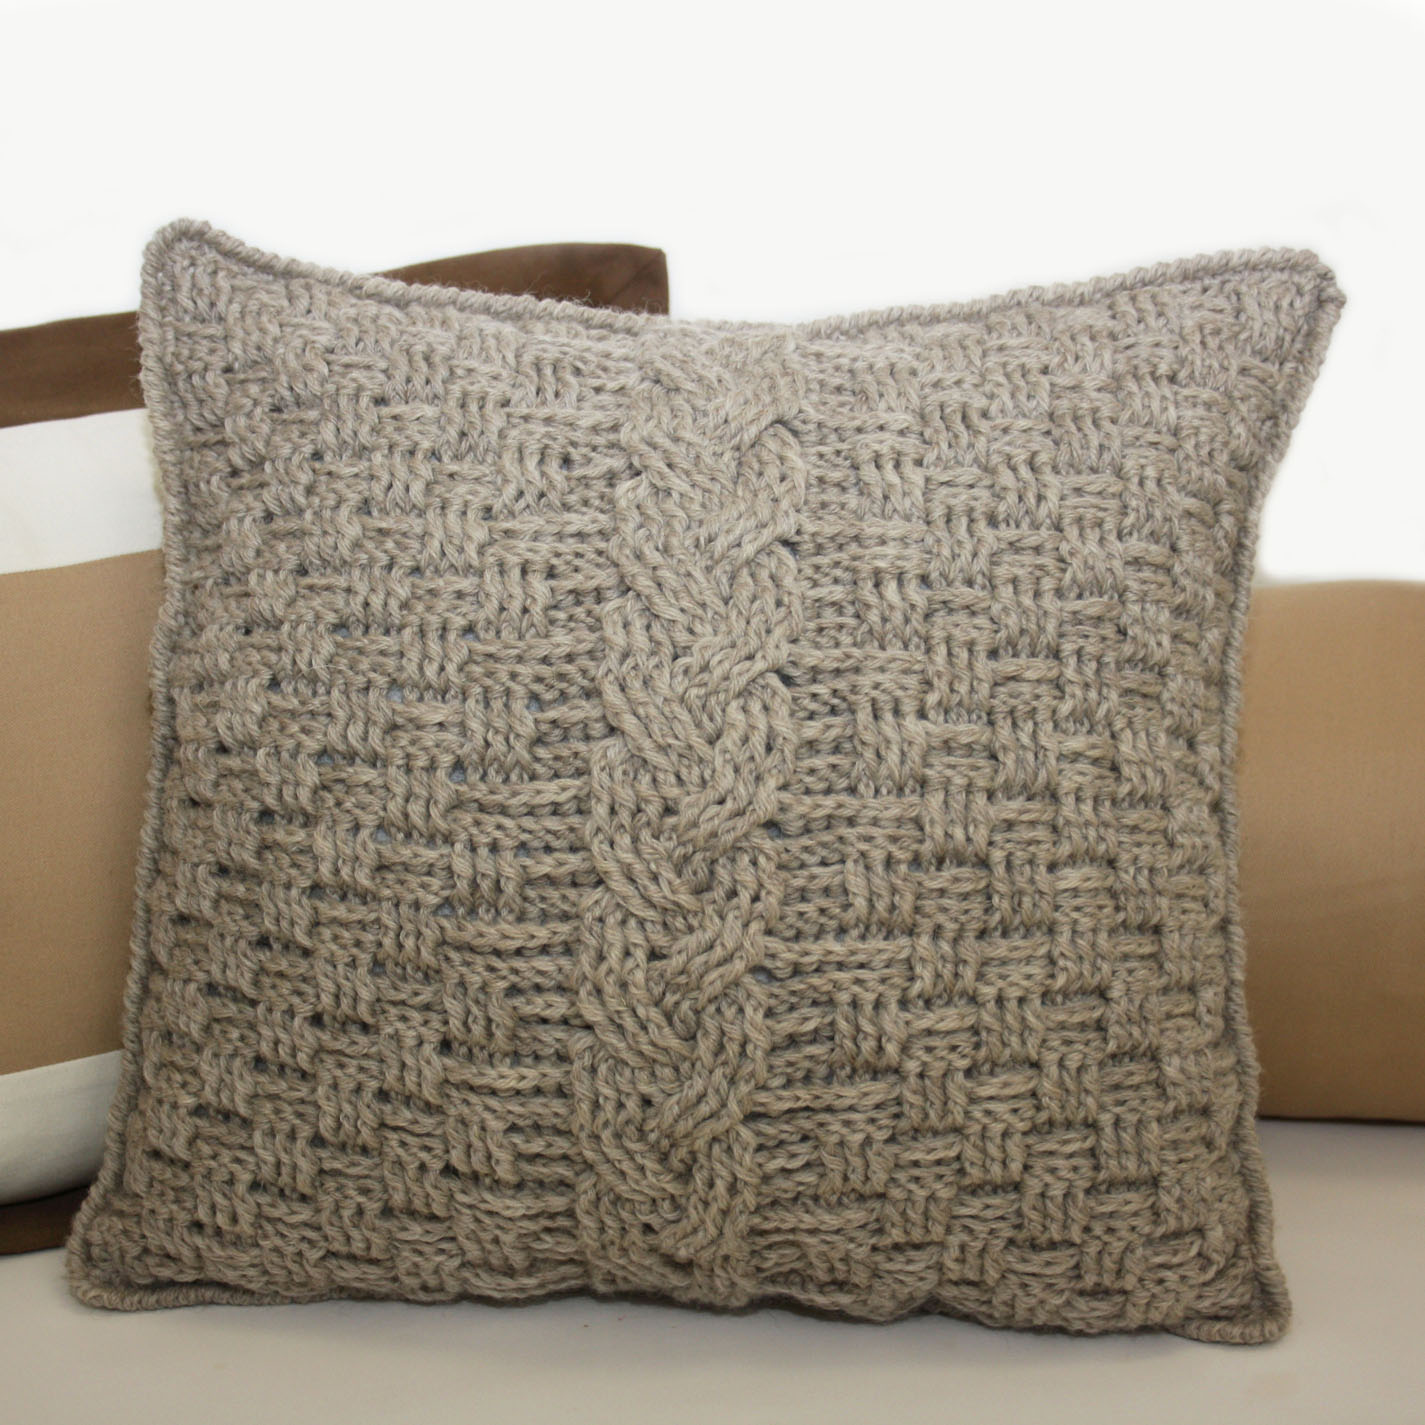 Crochet Patterns Pillows : ... ?sew?cute design shop: new crochet pattern - aran accent pillow